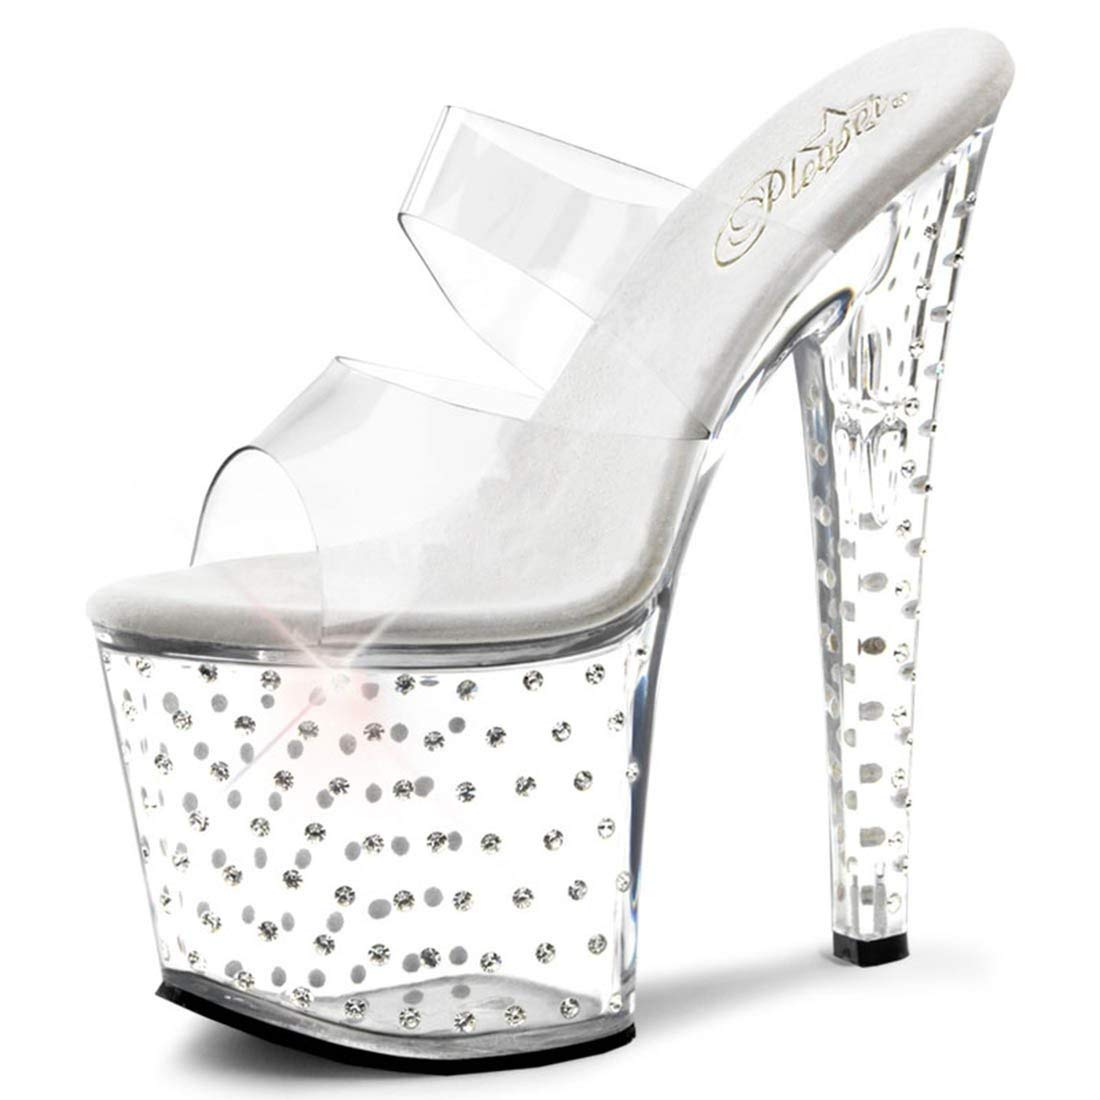 f3d95884c8 Get Quotations · Summitfashions Clear See Through Rhinestone High Heels  with Clear Top Straps and 7.5 Inch Heel